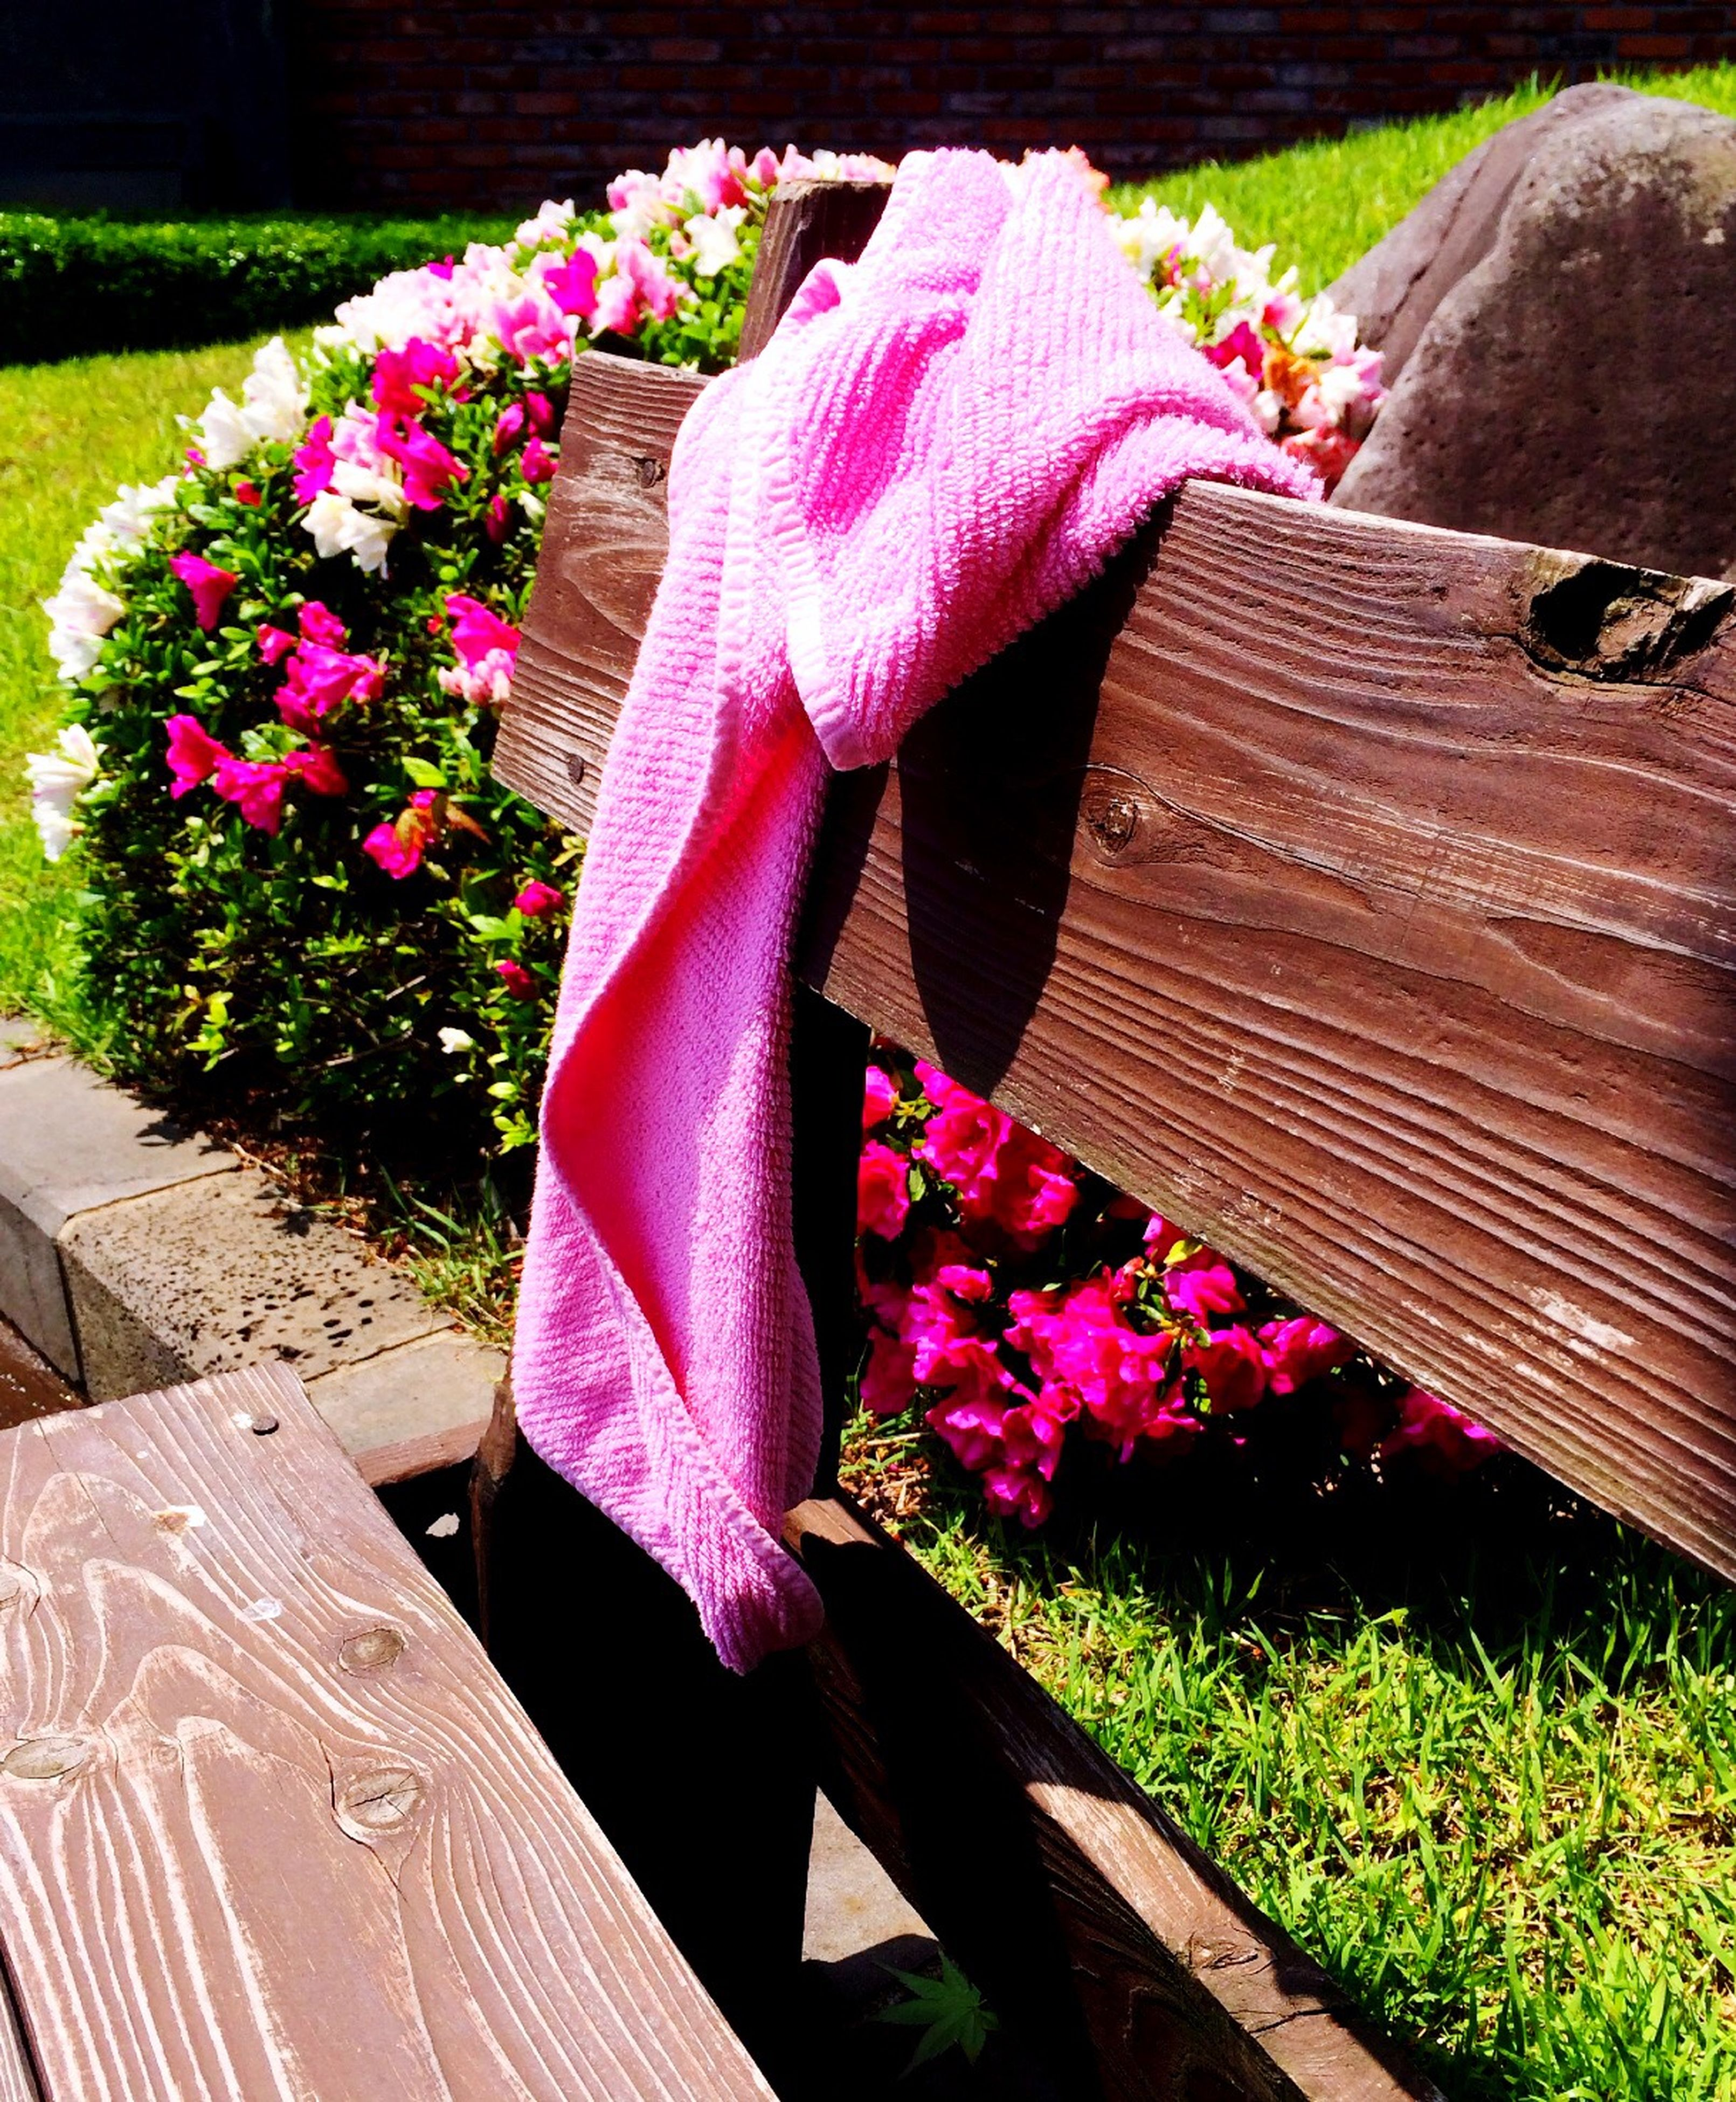 flower, pink color, fragility, freshness, growth, petal, plant, park - man made space, beauty in nature, sunlight, day, nature, outdoors, bench, high angle view, grass, wood - material, blossom